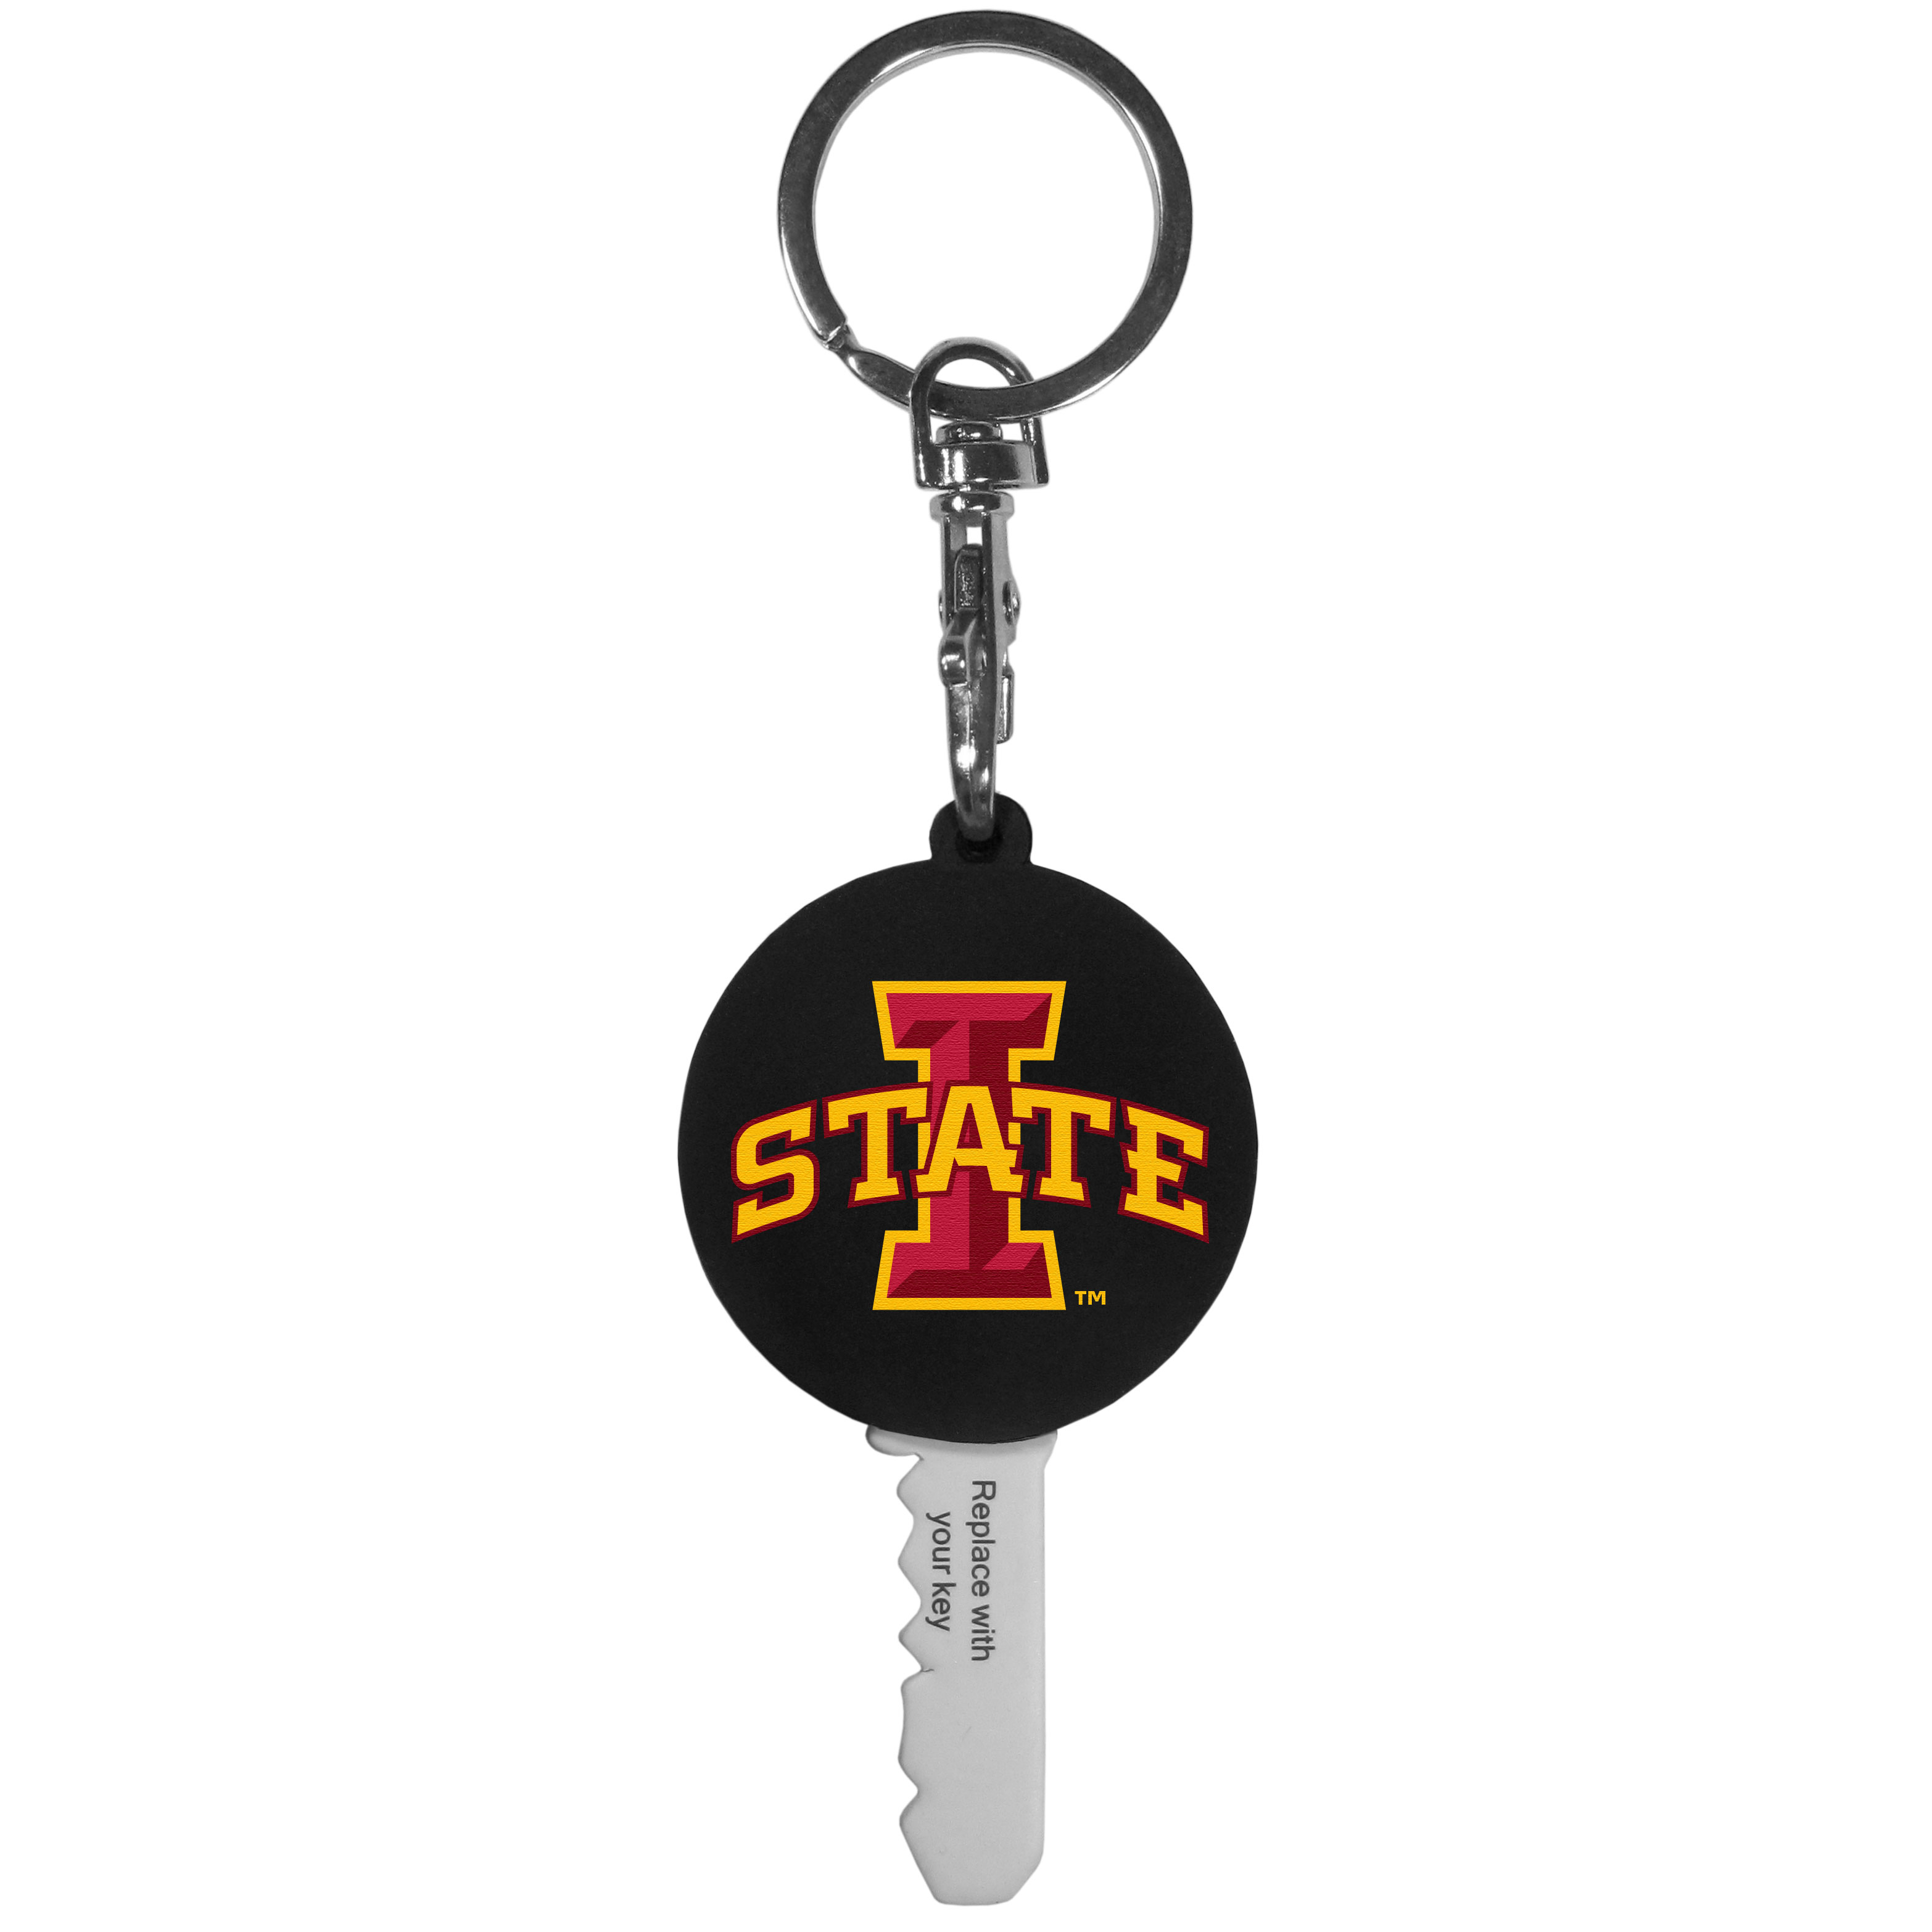 Iowa St. Cyclones Mini Light Key Topper - This super handy little key topper has a built in mini light that illuminates the lock so you do not have to fumble in the dark trying to open your door. You slide your house key into the top of the rubber key topper and your ready to go. The topper features a Iowa St. Cyclones logo on the front of the topper.